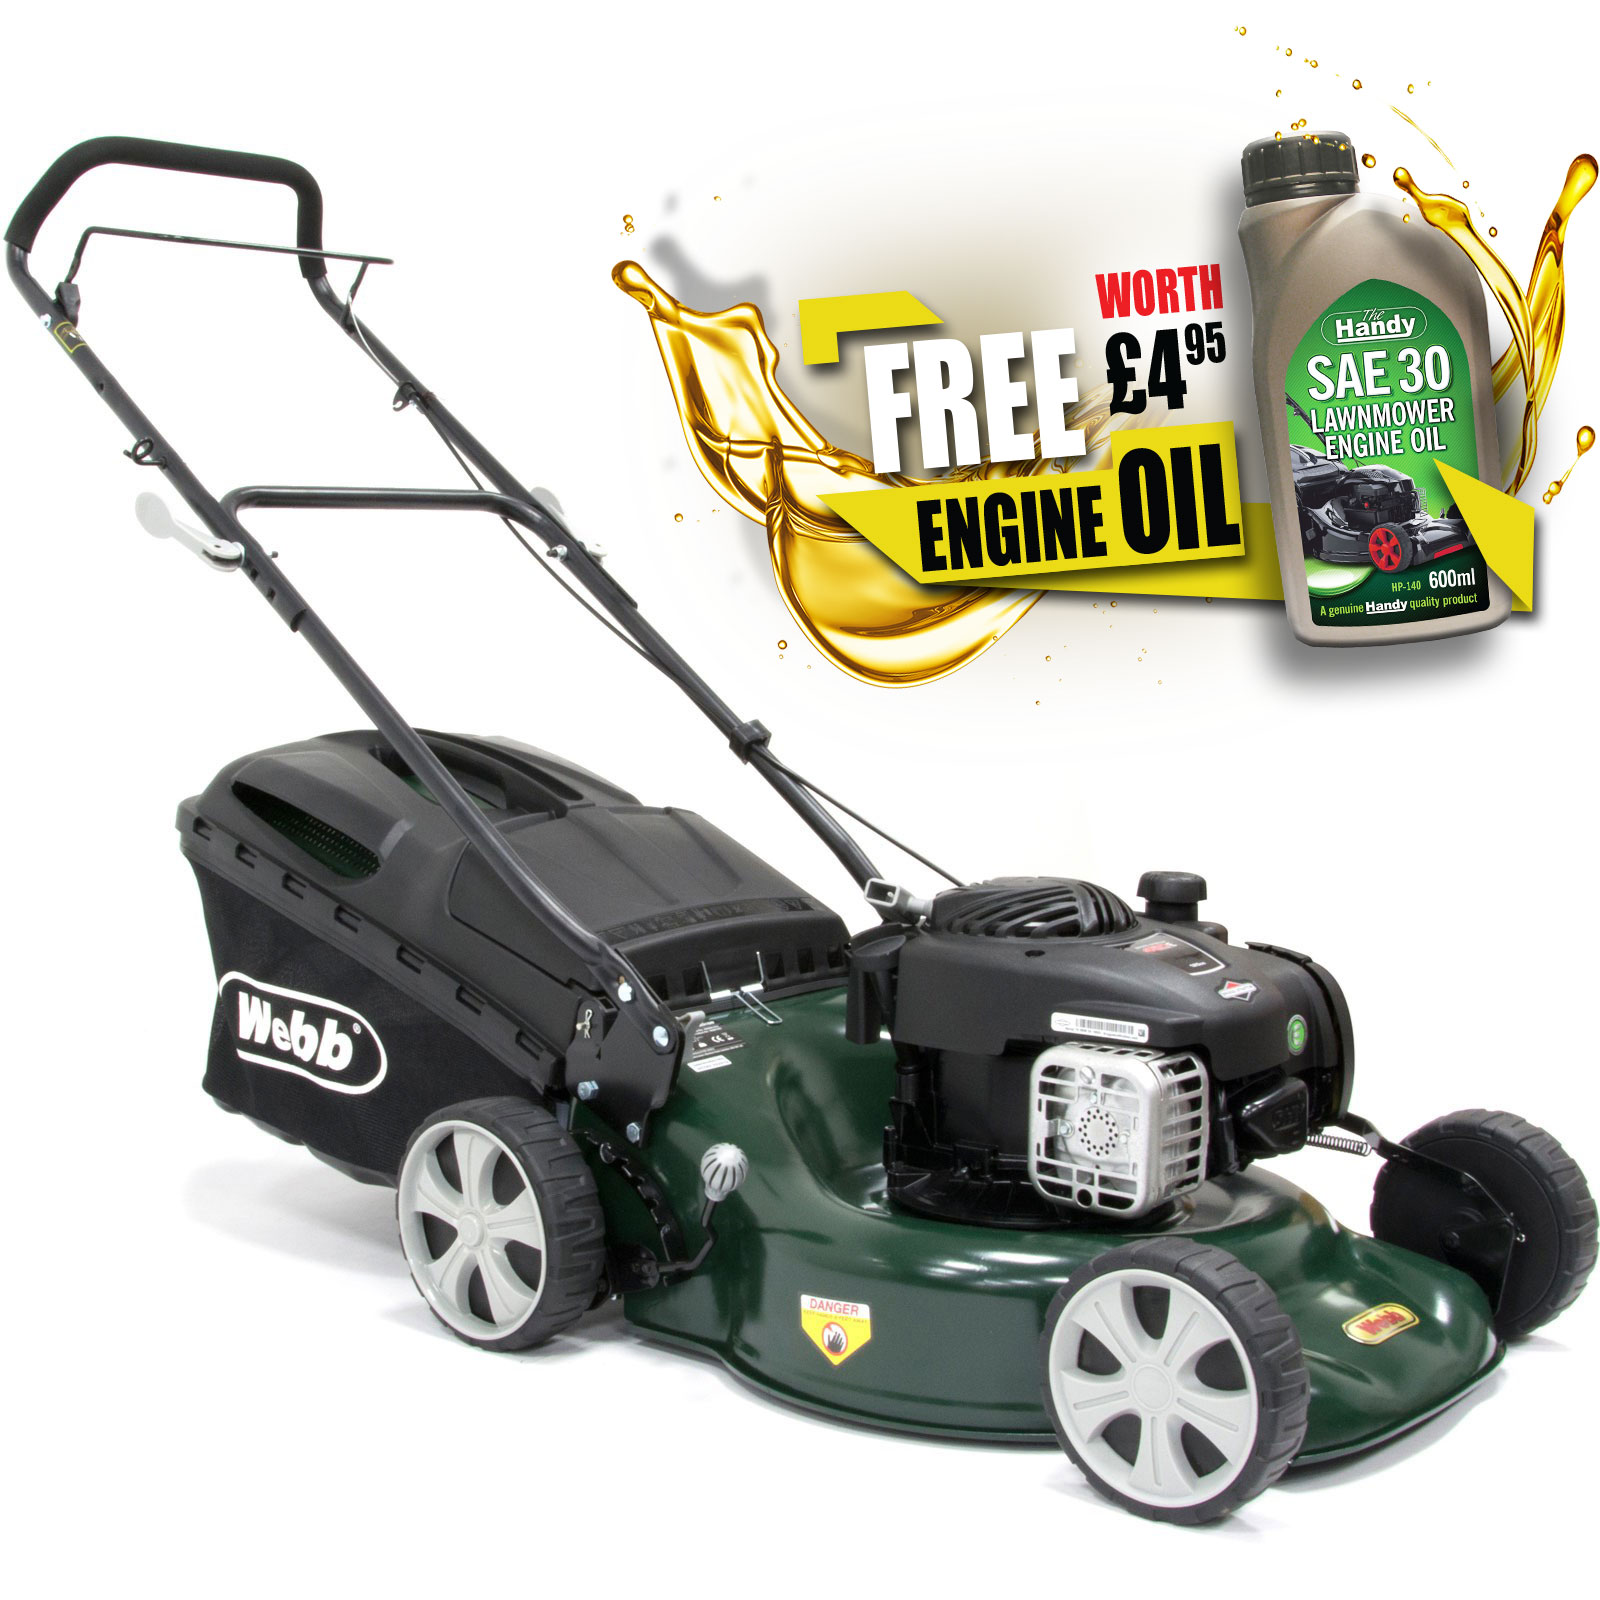 Image of Webb WER18SP Self Propelled Petrol 3 in 1 Rotary Lawnmower 460mm FREE Engine Oil Worth £4.95